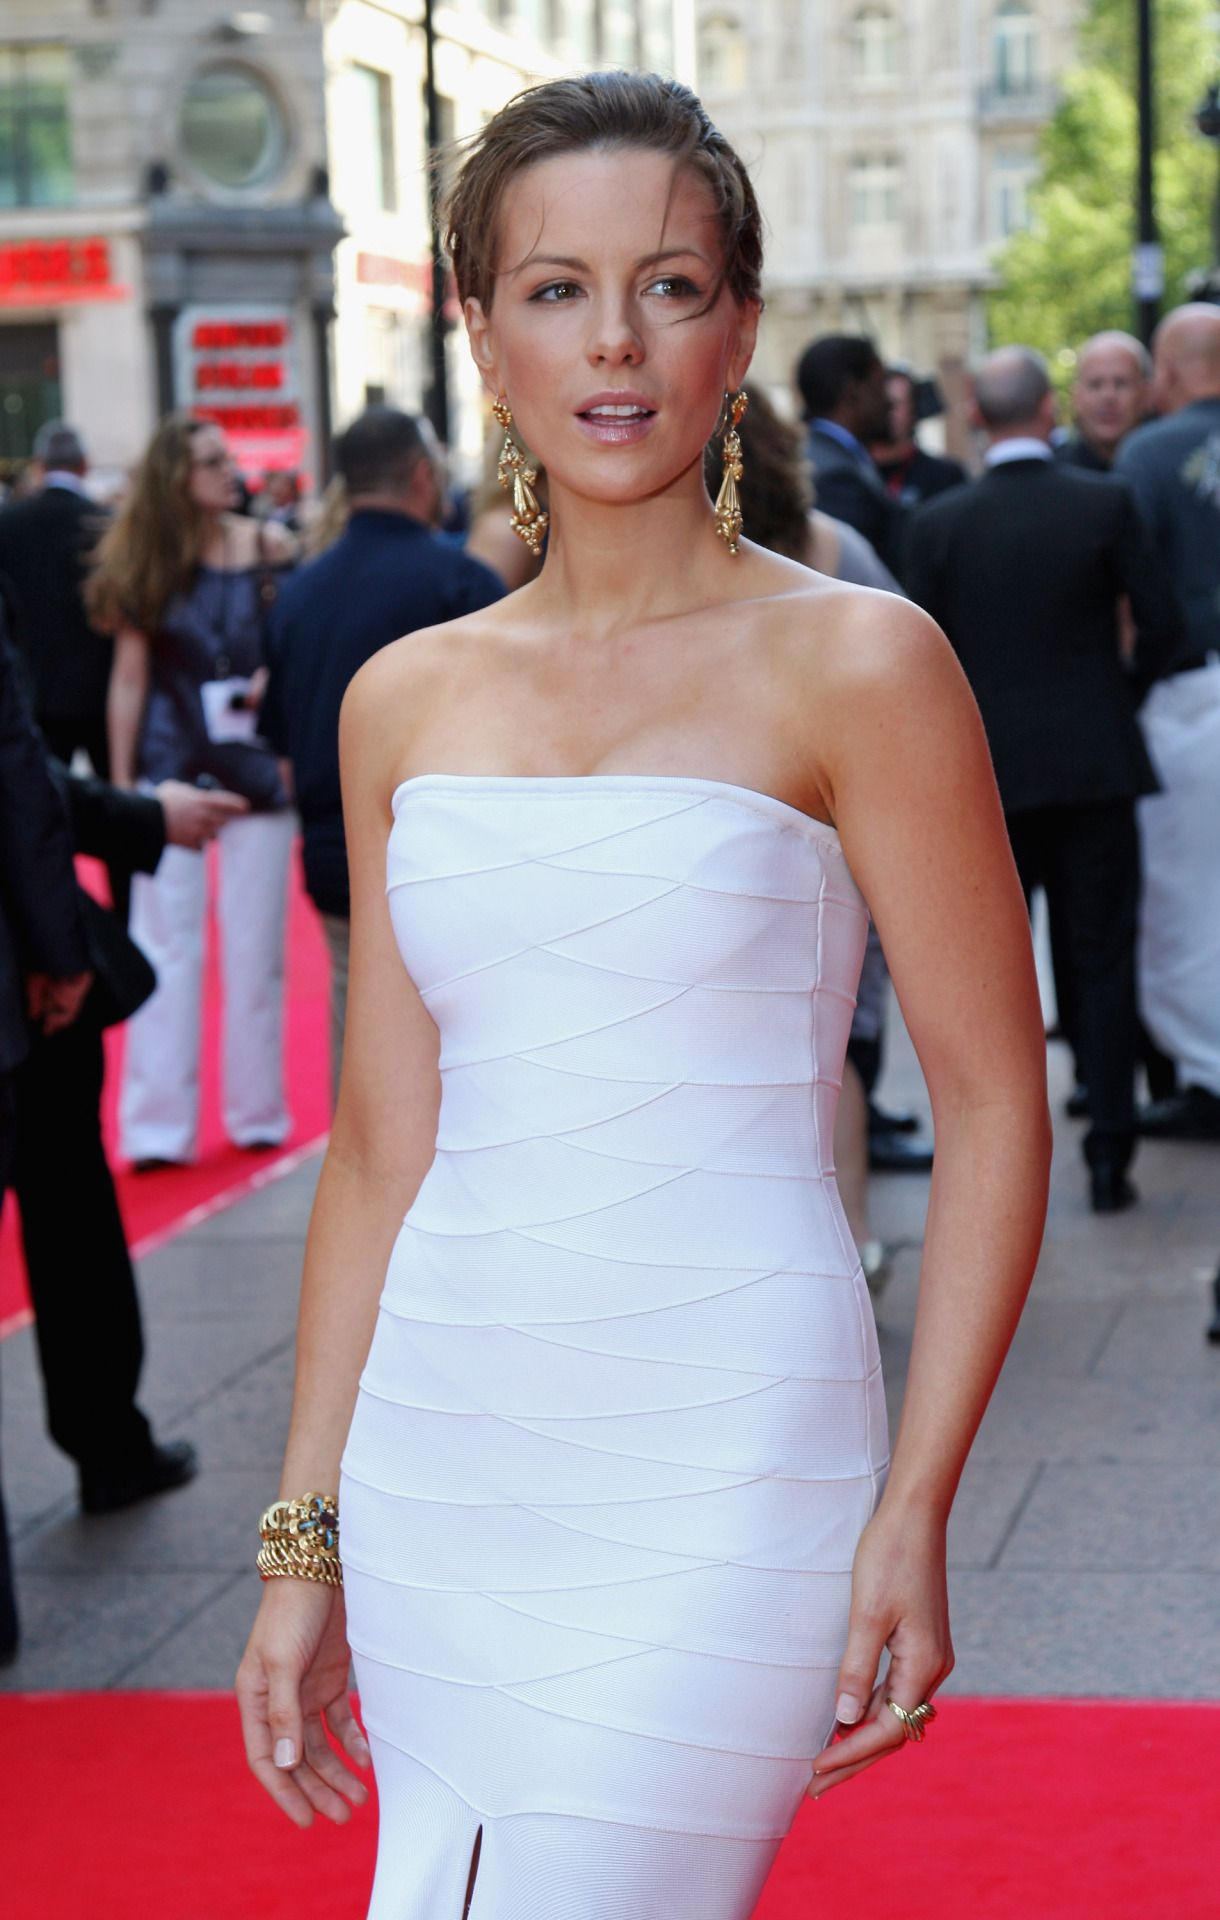 Kate beckinsale posing on the red carpet in a strapless white body